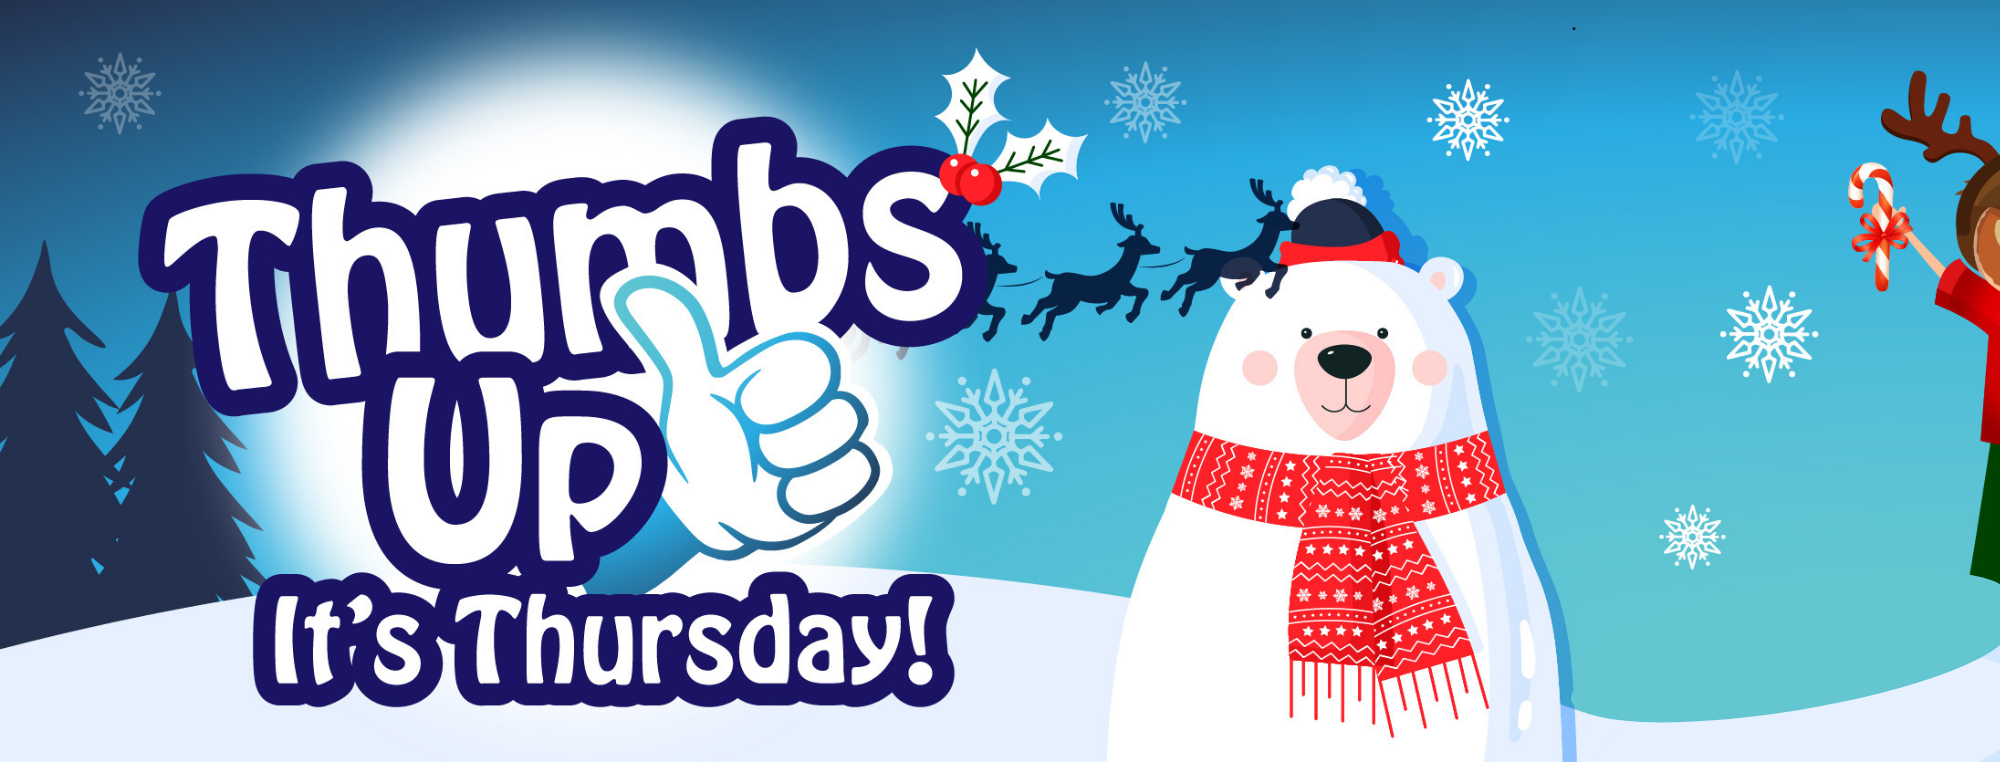 A snowman next to the Thumbs Up it's Thursday logo